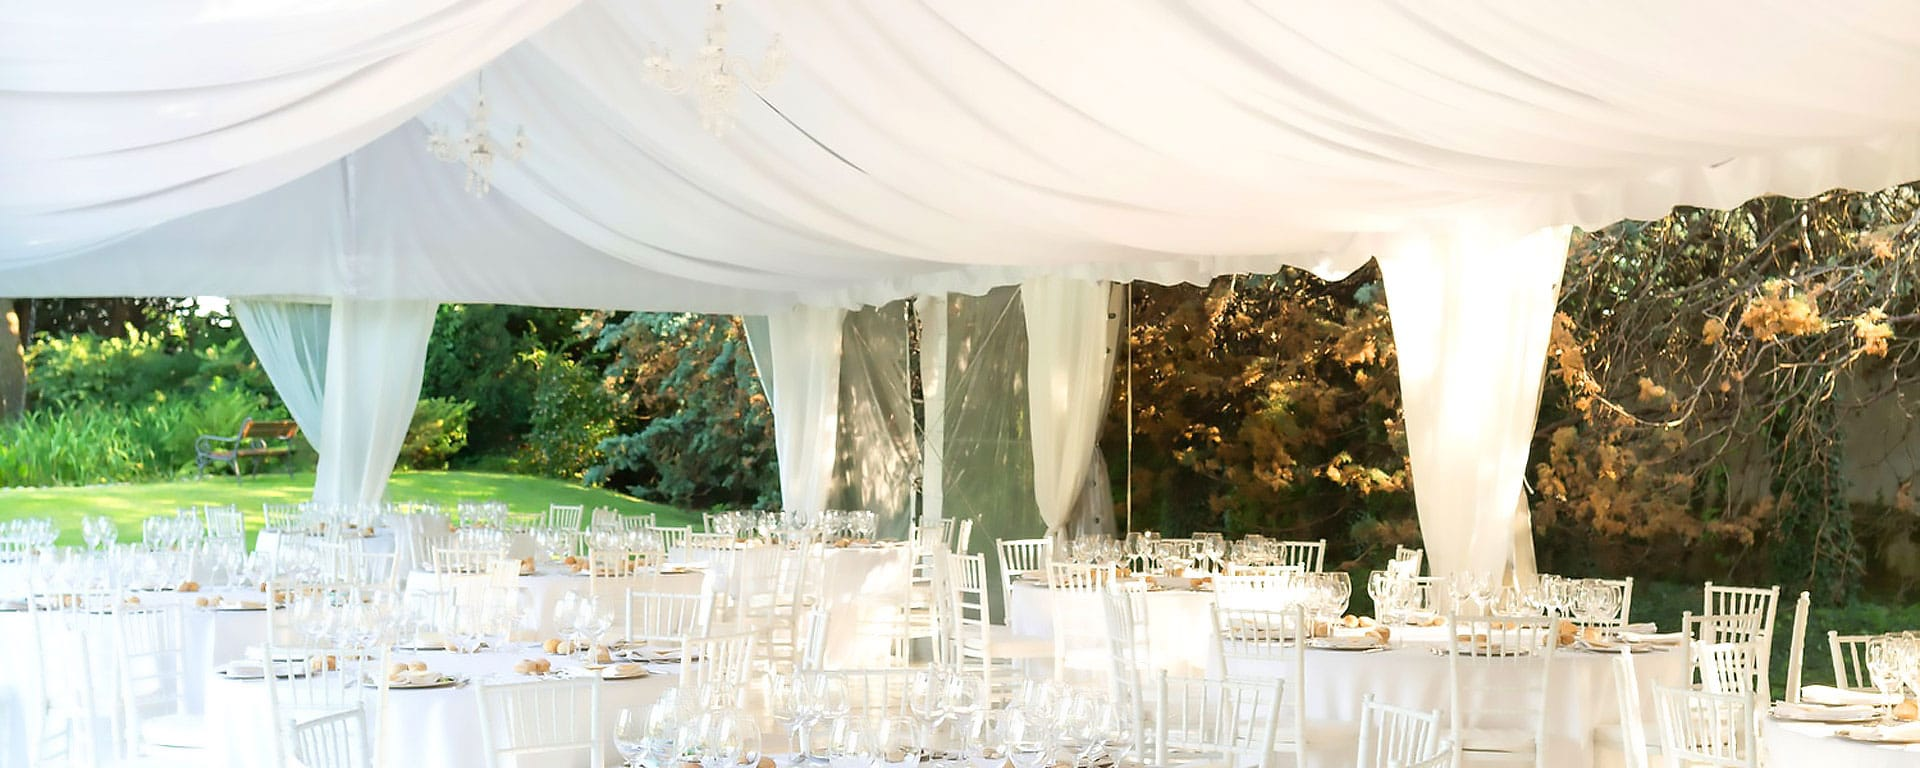 We OFFER Special Wedding Marquee Packages!